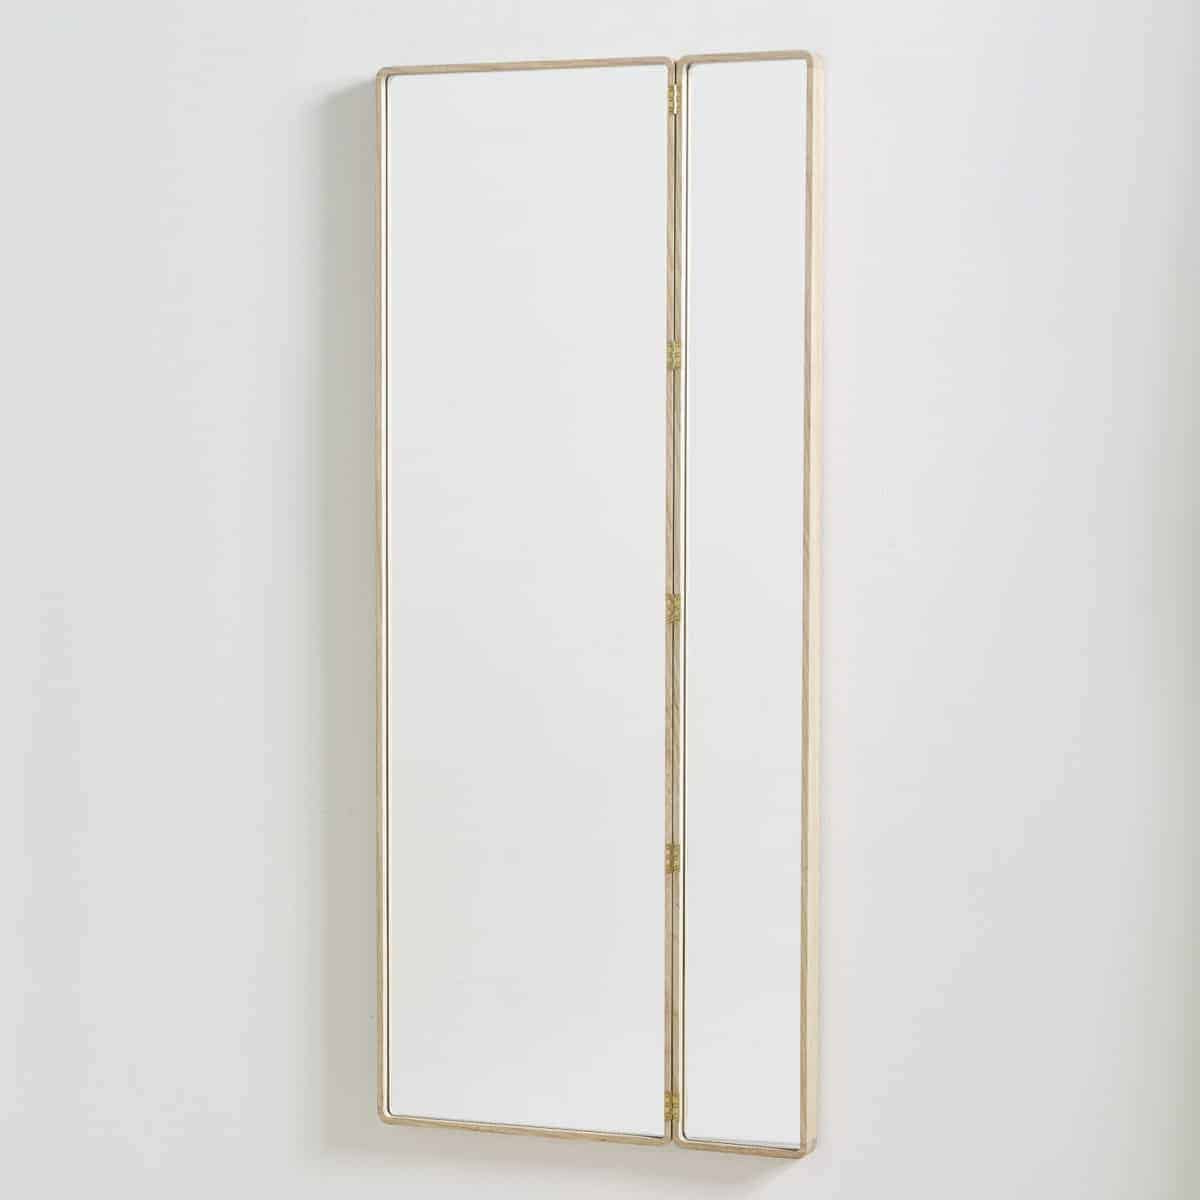 Ori Wall Mirror Pertaining To Fashionable Hinged Wall Mirrors (View 3 of 20)